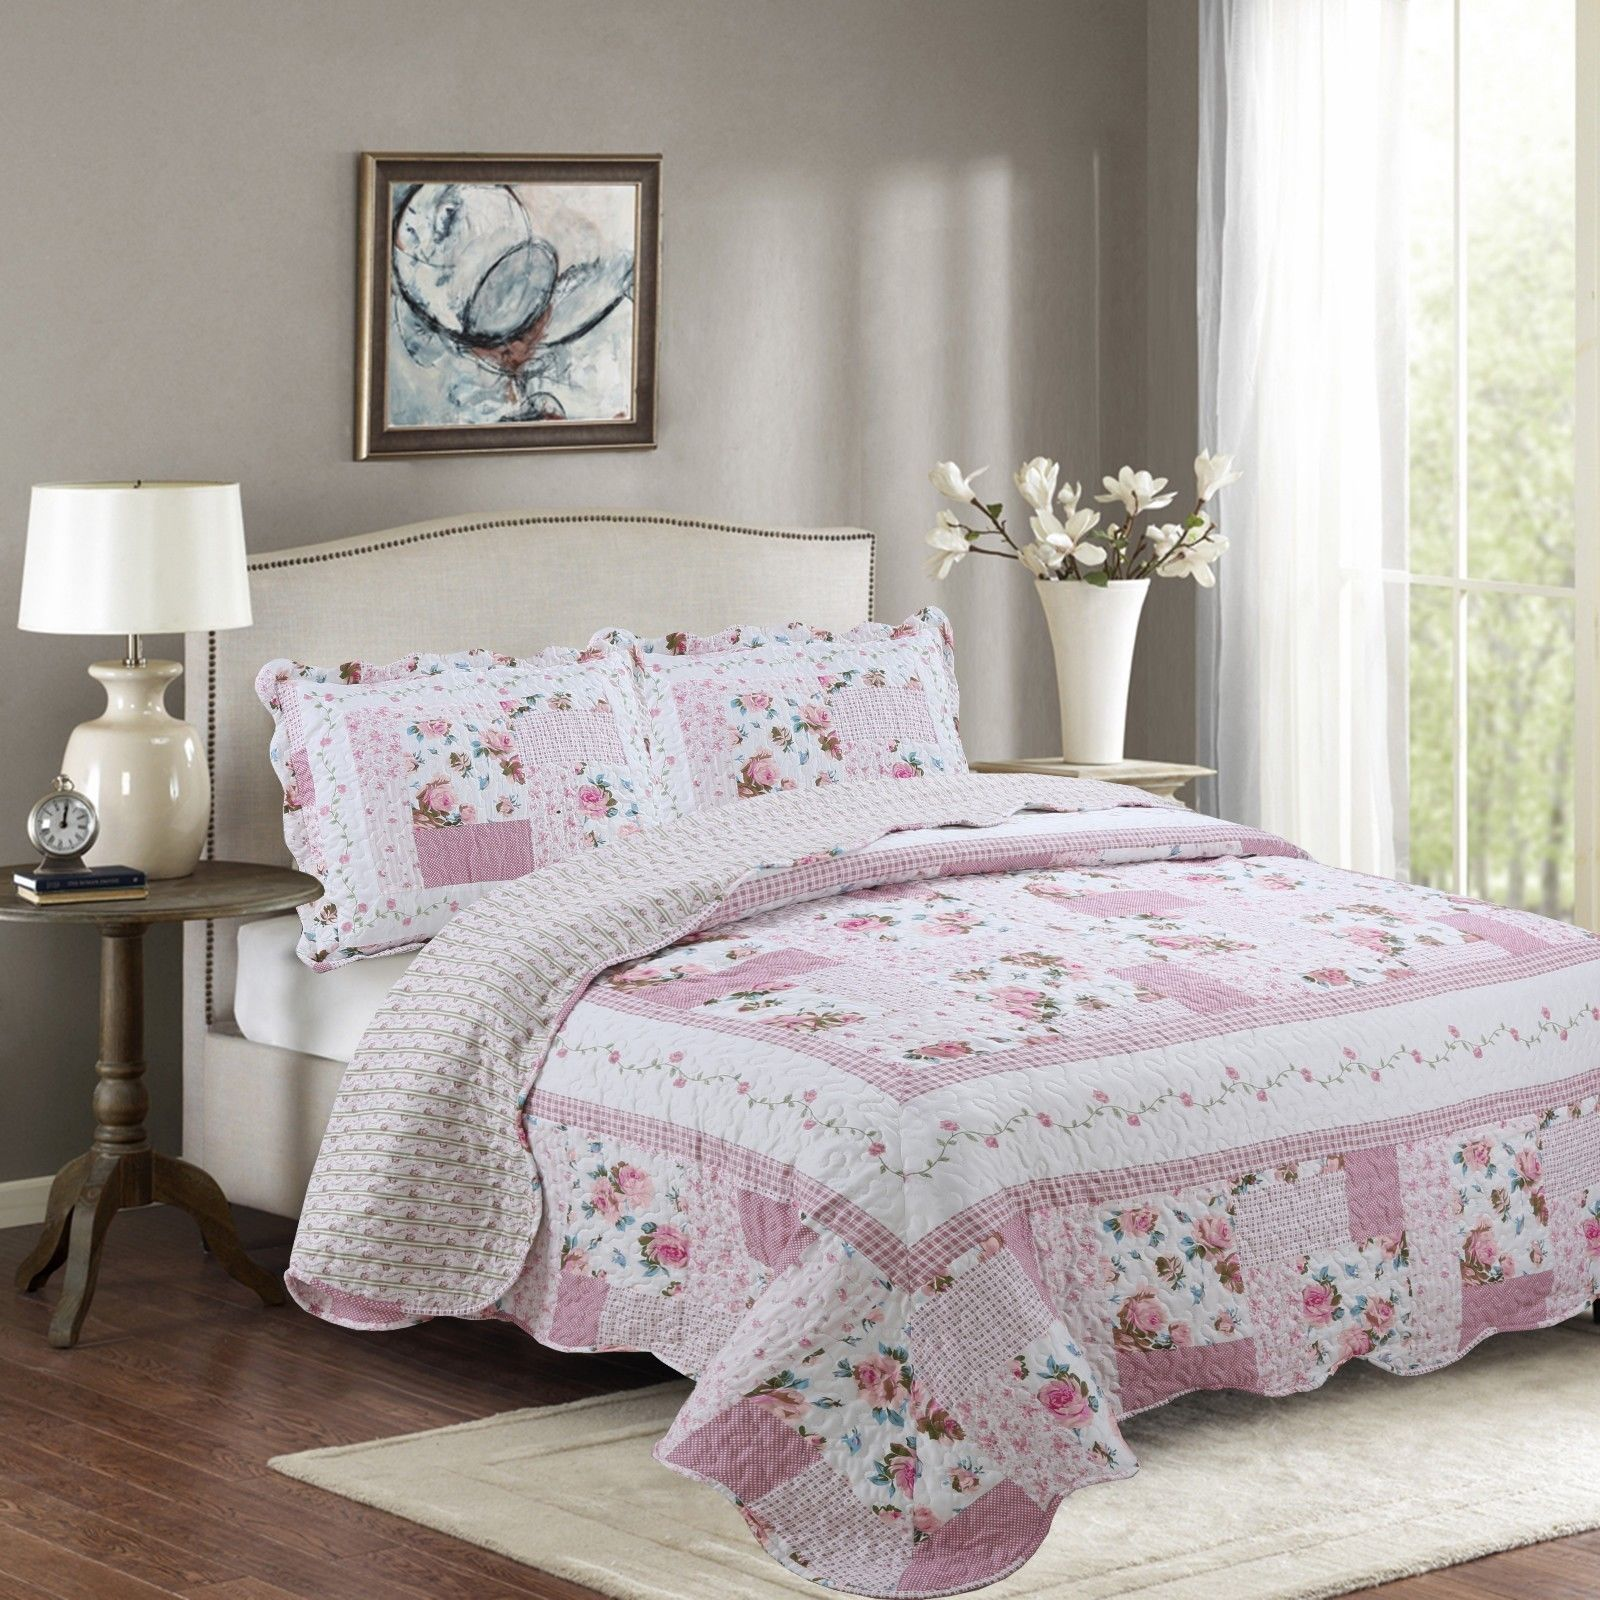 Fancy Linen 2pc Twin/Twin Extra Long Reversible Bedspread Floral Pink White Green New # Melody